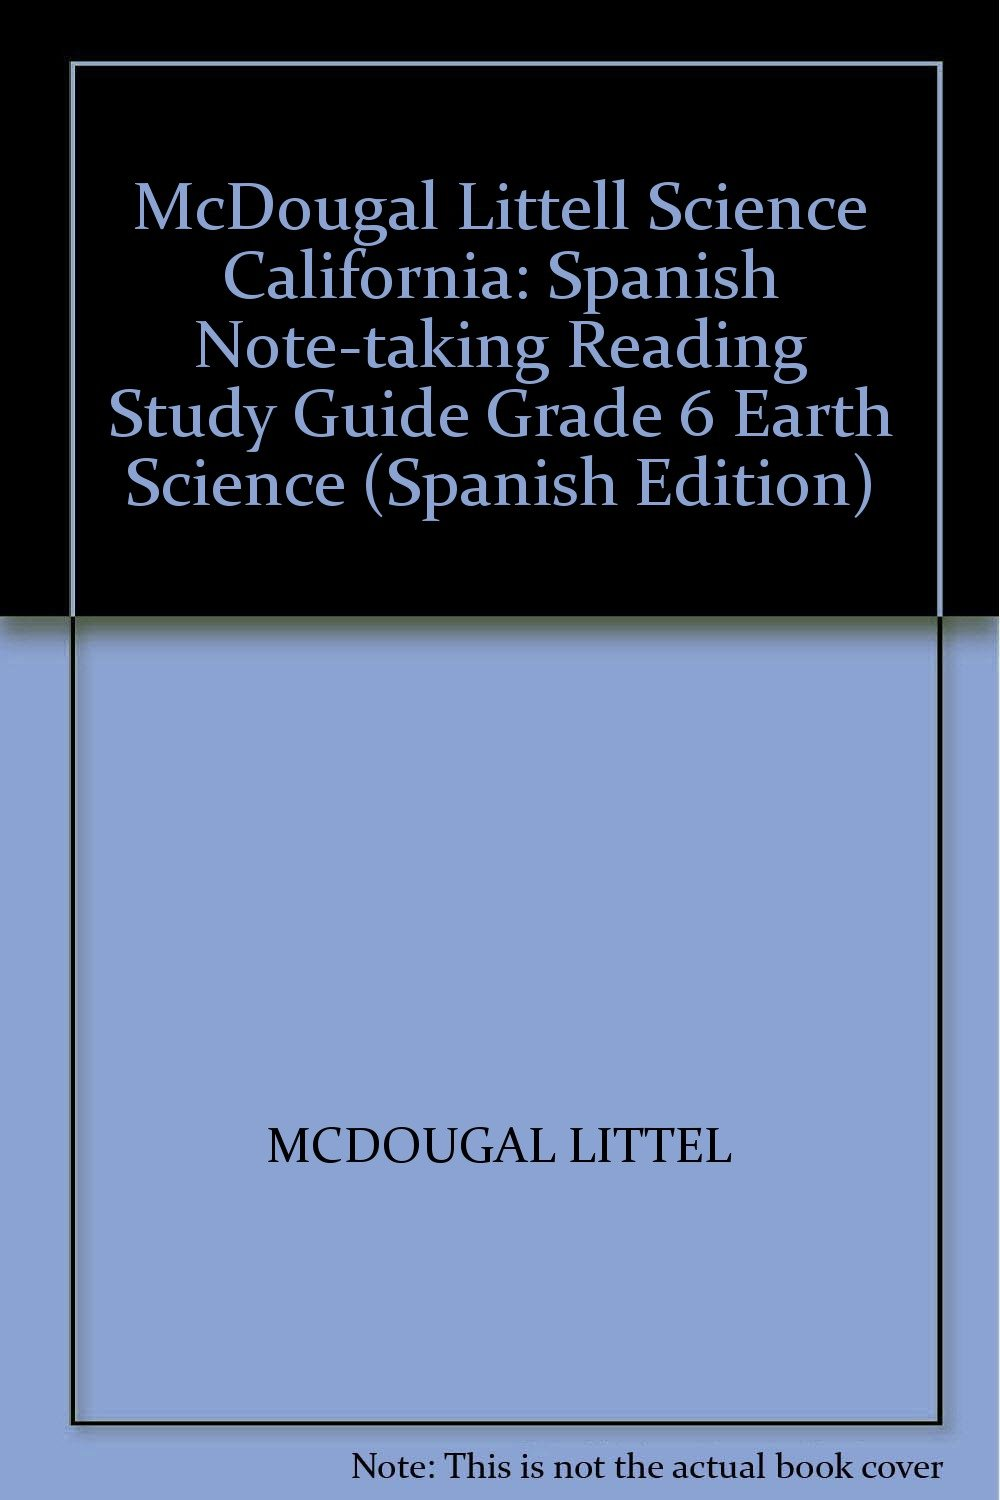 McDougal Littell Science: Spanish Note-taking Reading Study Guide Grade 6  Earth Science (Spanish Edition): MCDOUGAL LITTEL: 9780618708239:  Amazon.com: Books